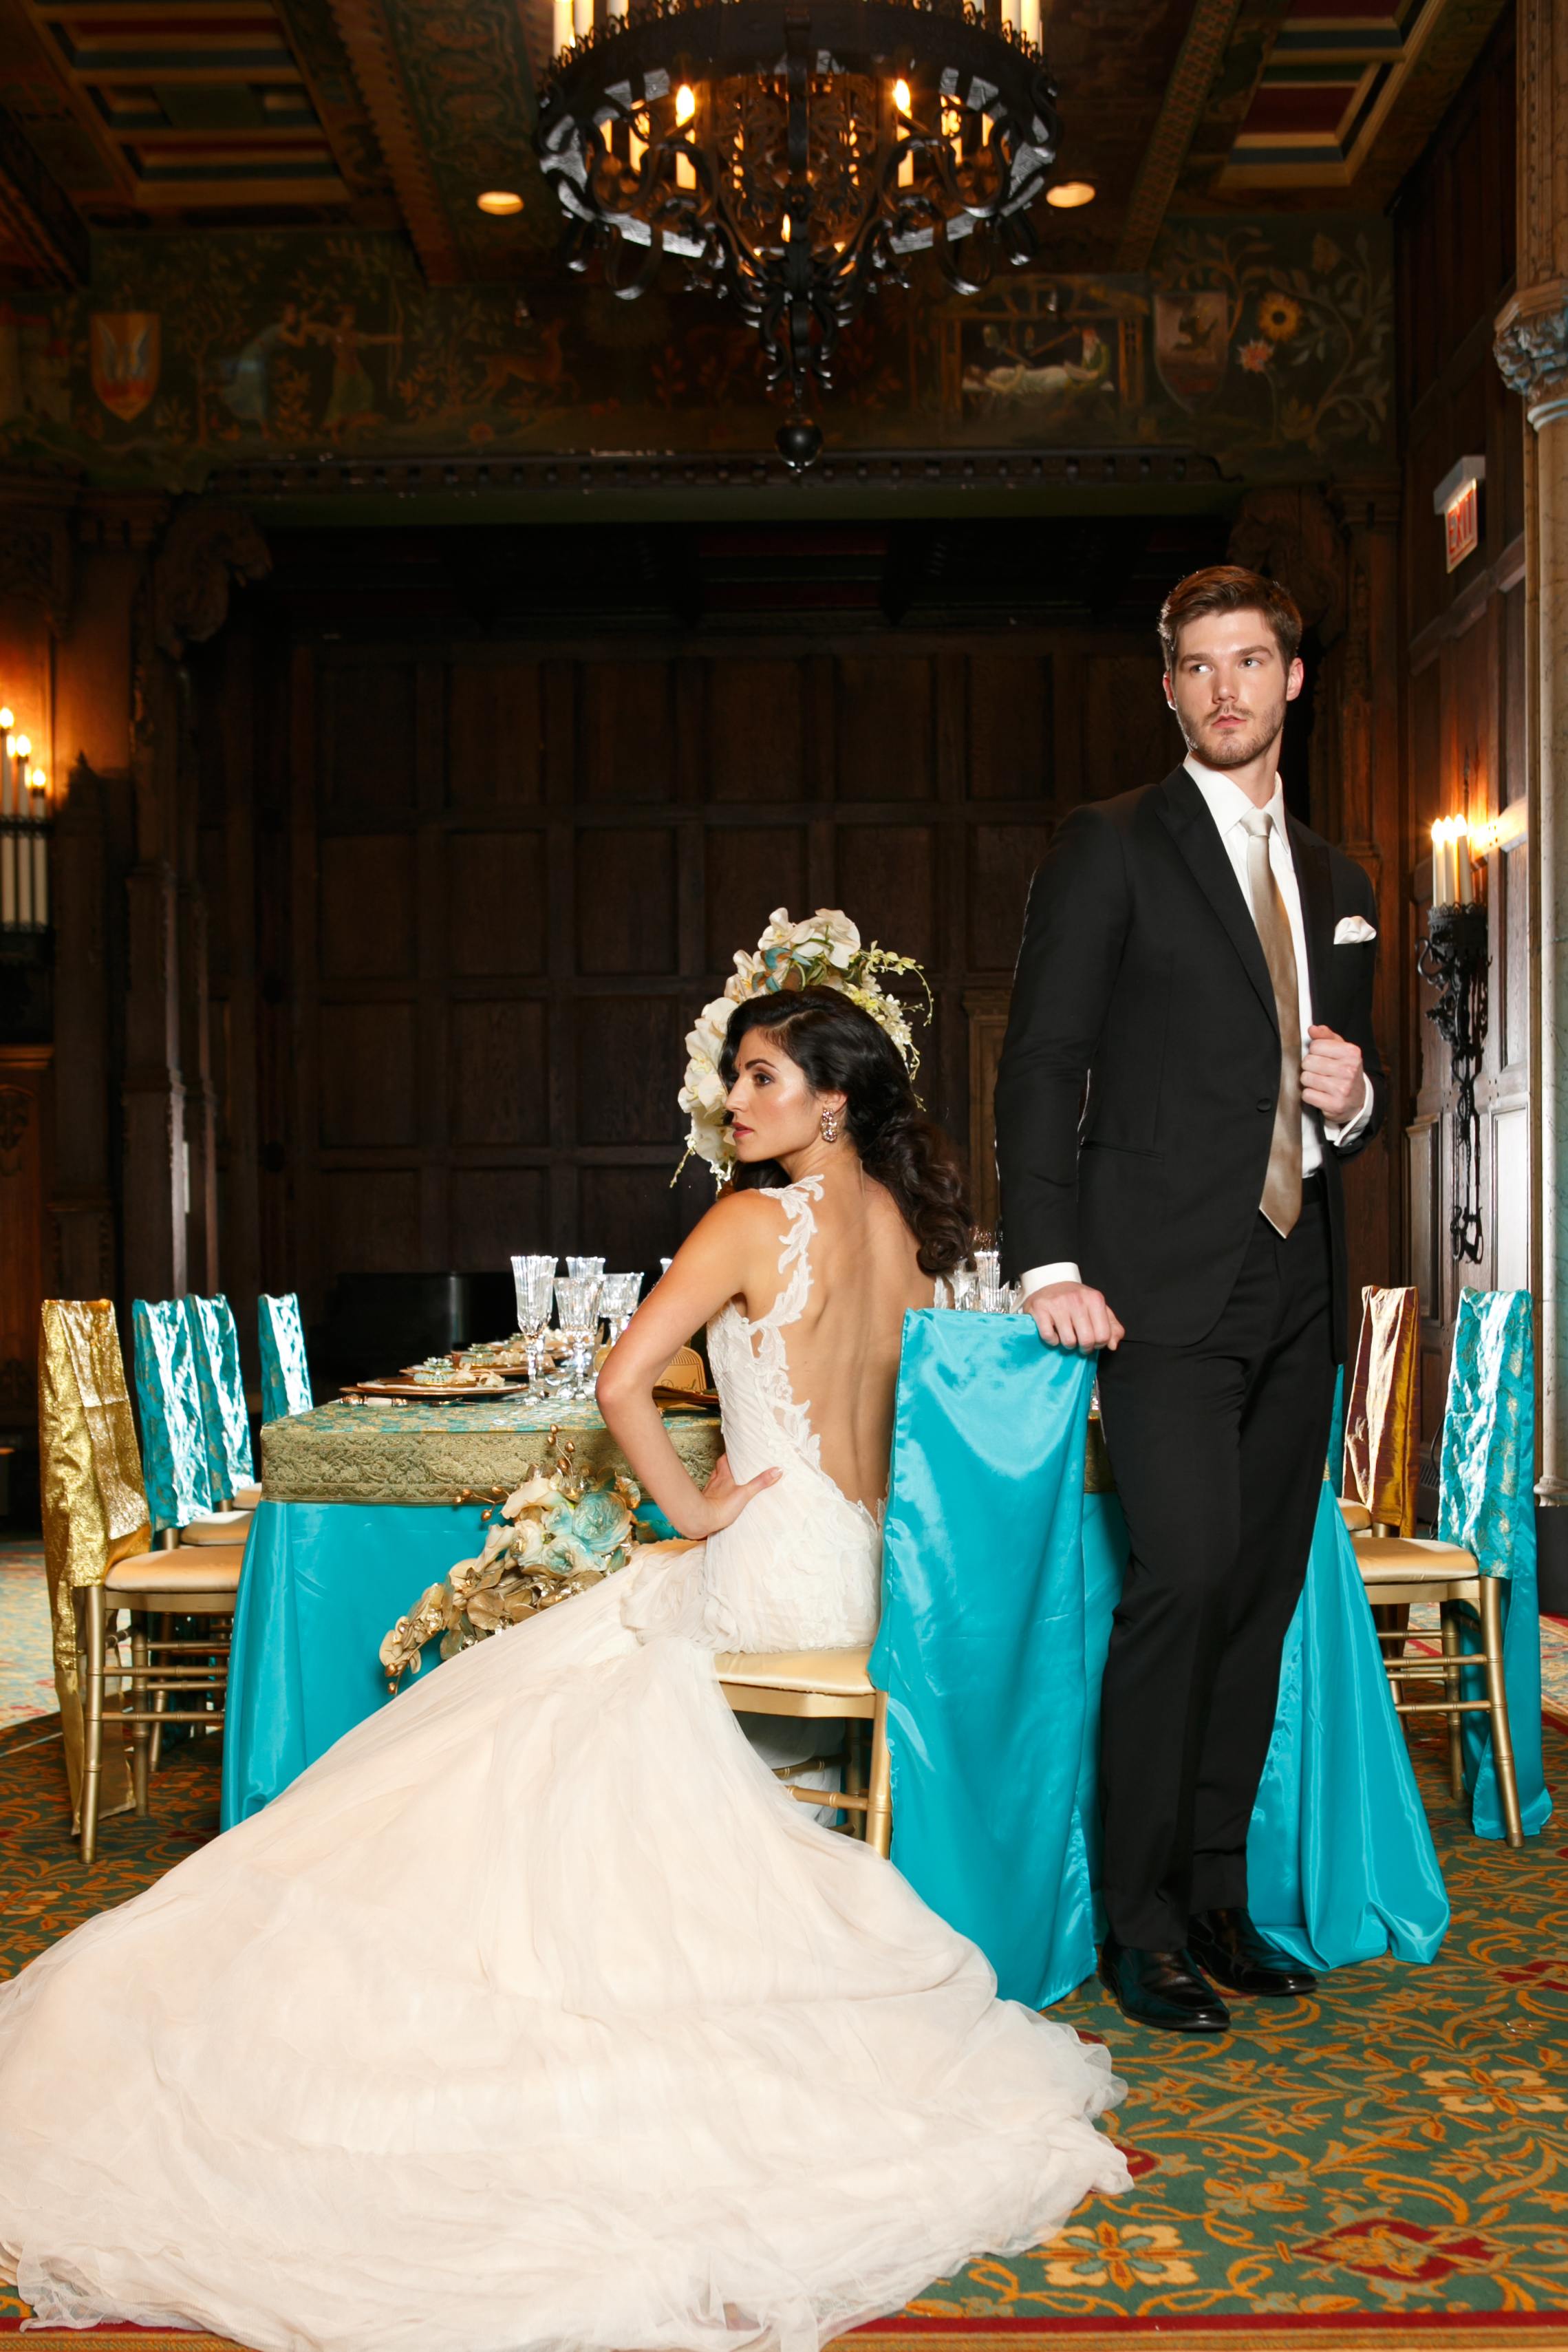 Teal and Ivory Wedding Details with Gold Accents by Navjot Design | SYPhotography